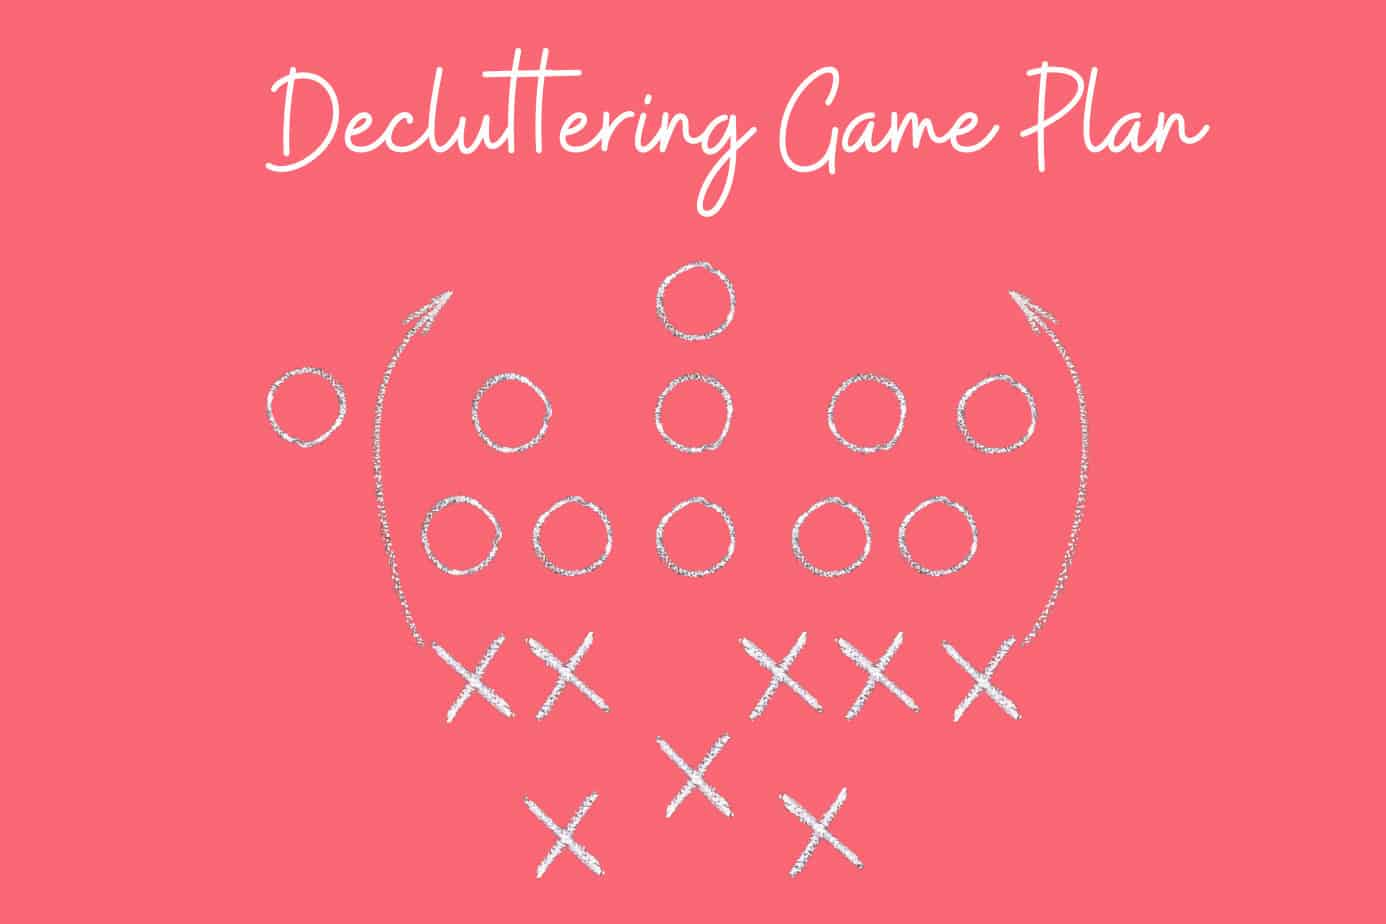 game plan of x and o for expert decluttering tips